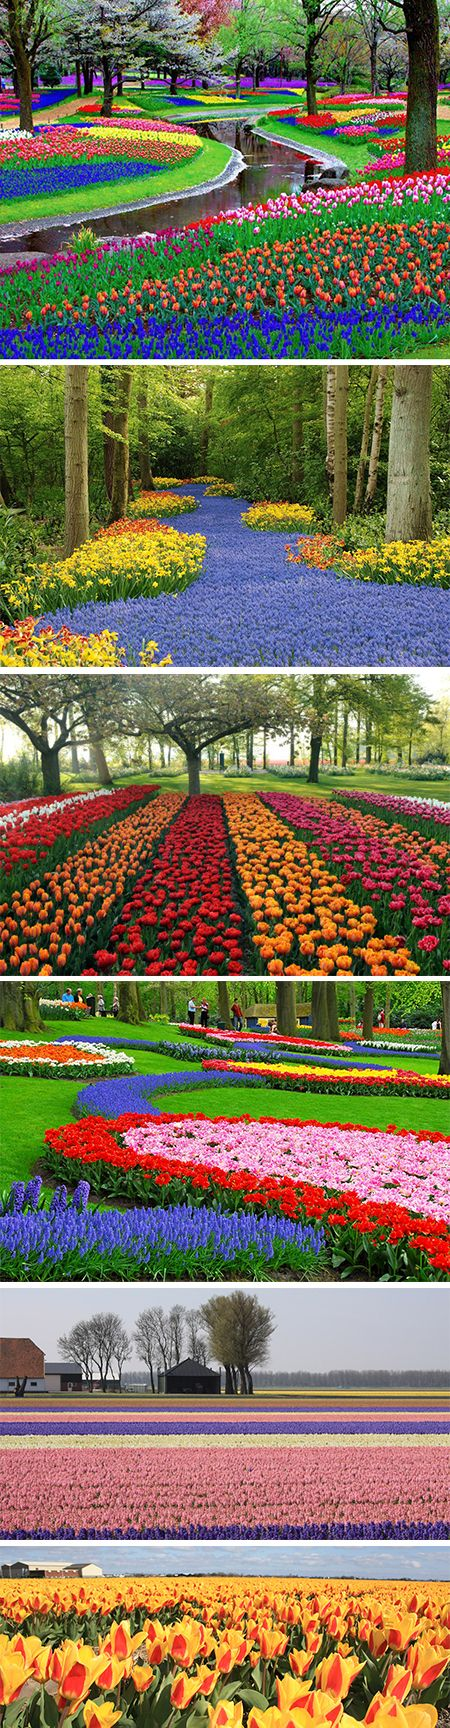 Flower Mostly Tulip Fields It amazing and